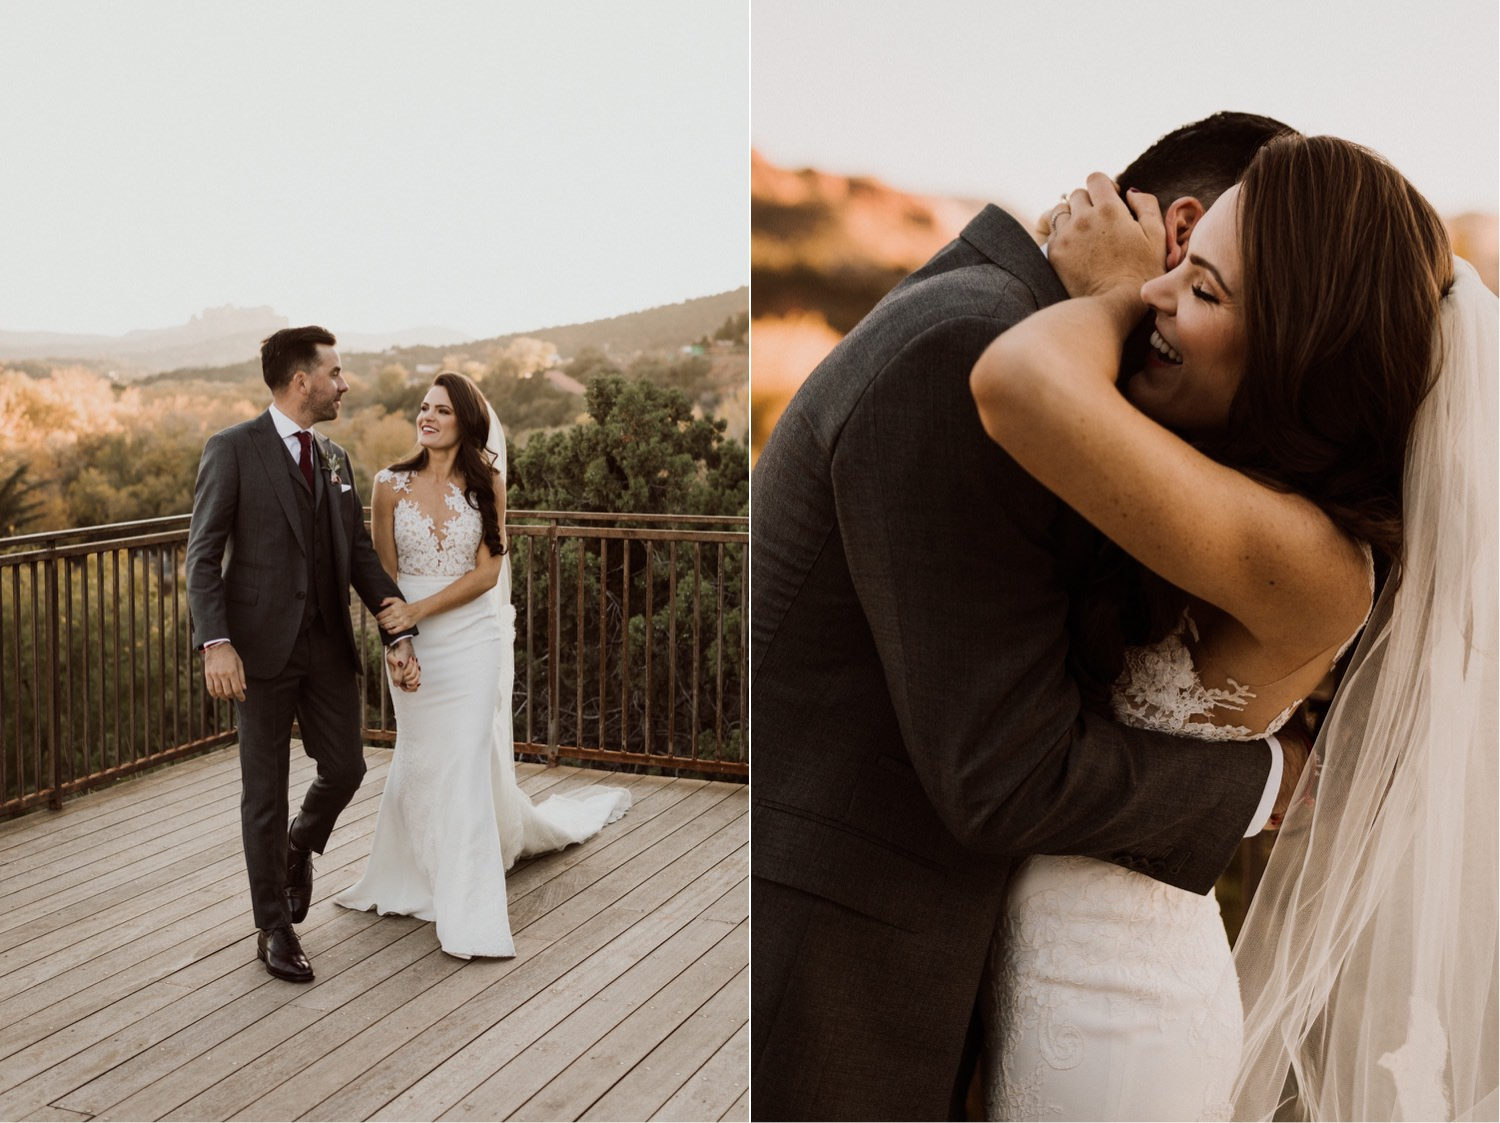 31_intimate-sedona-arizona-wedding-45_intimate-sedona-arizona-wedding-44.jpg